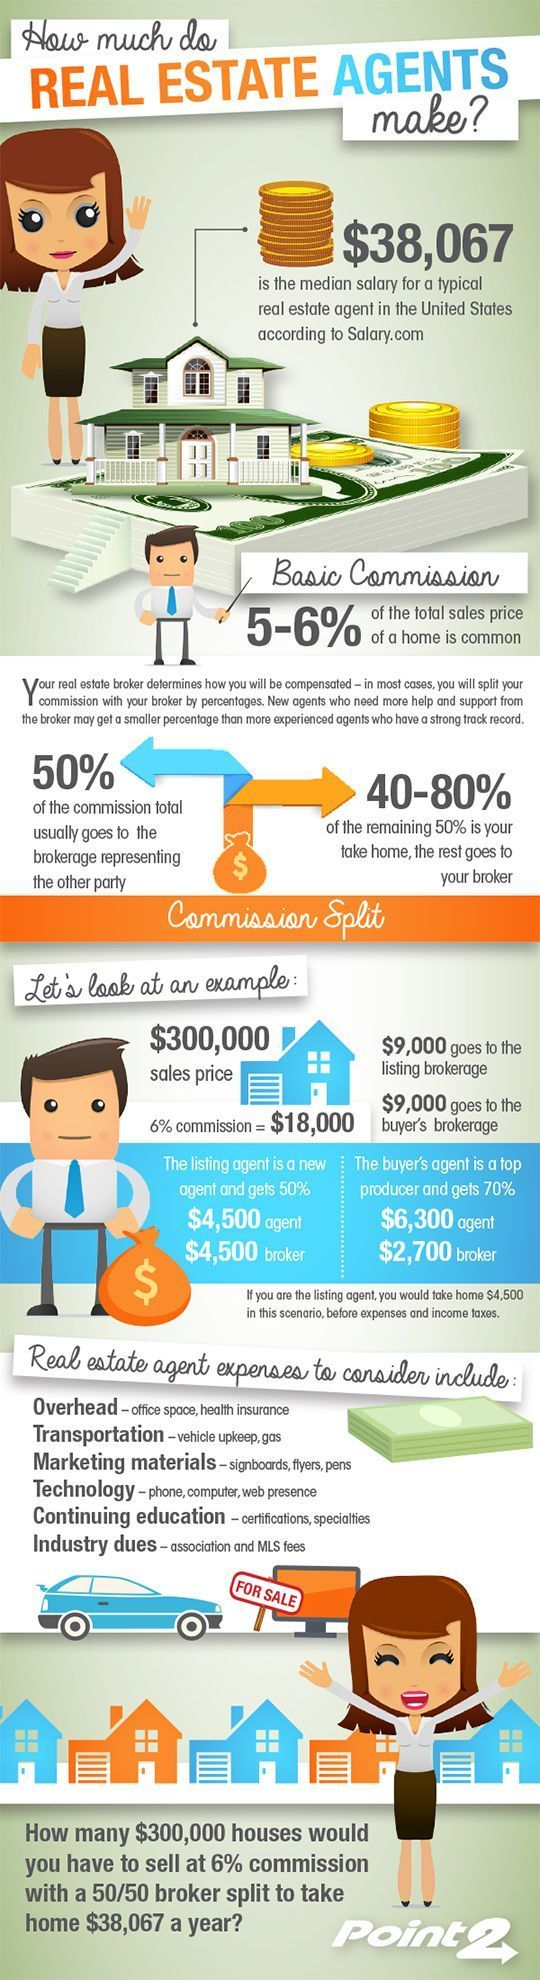 How Much Do Real Estate Agents Make? | Erika Lewis Blog I This pin brought to you by, Lisa Miguel, Realtor with West USA Realty. www.lisamiguel.com